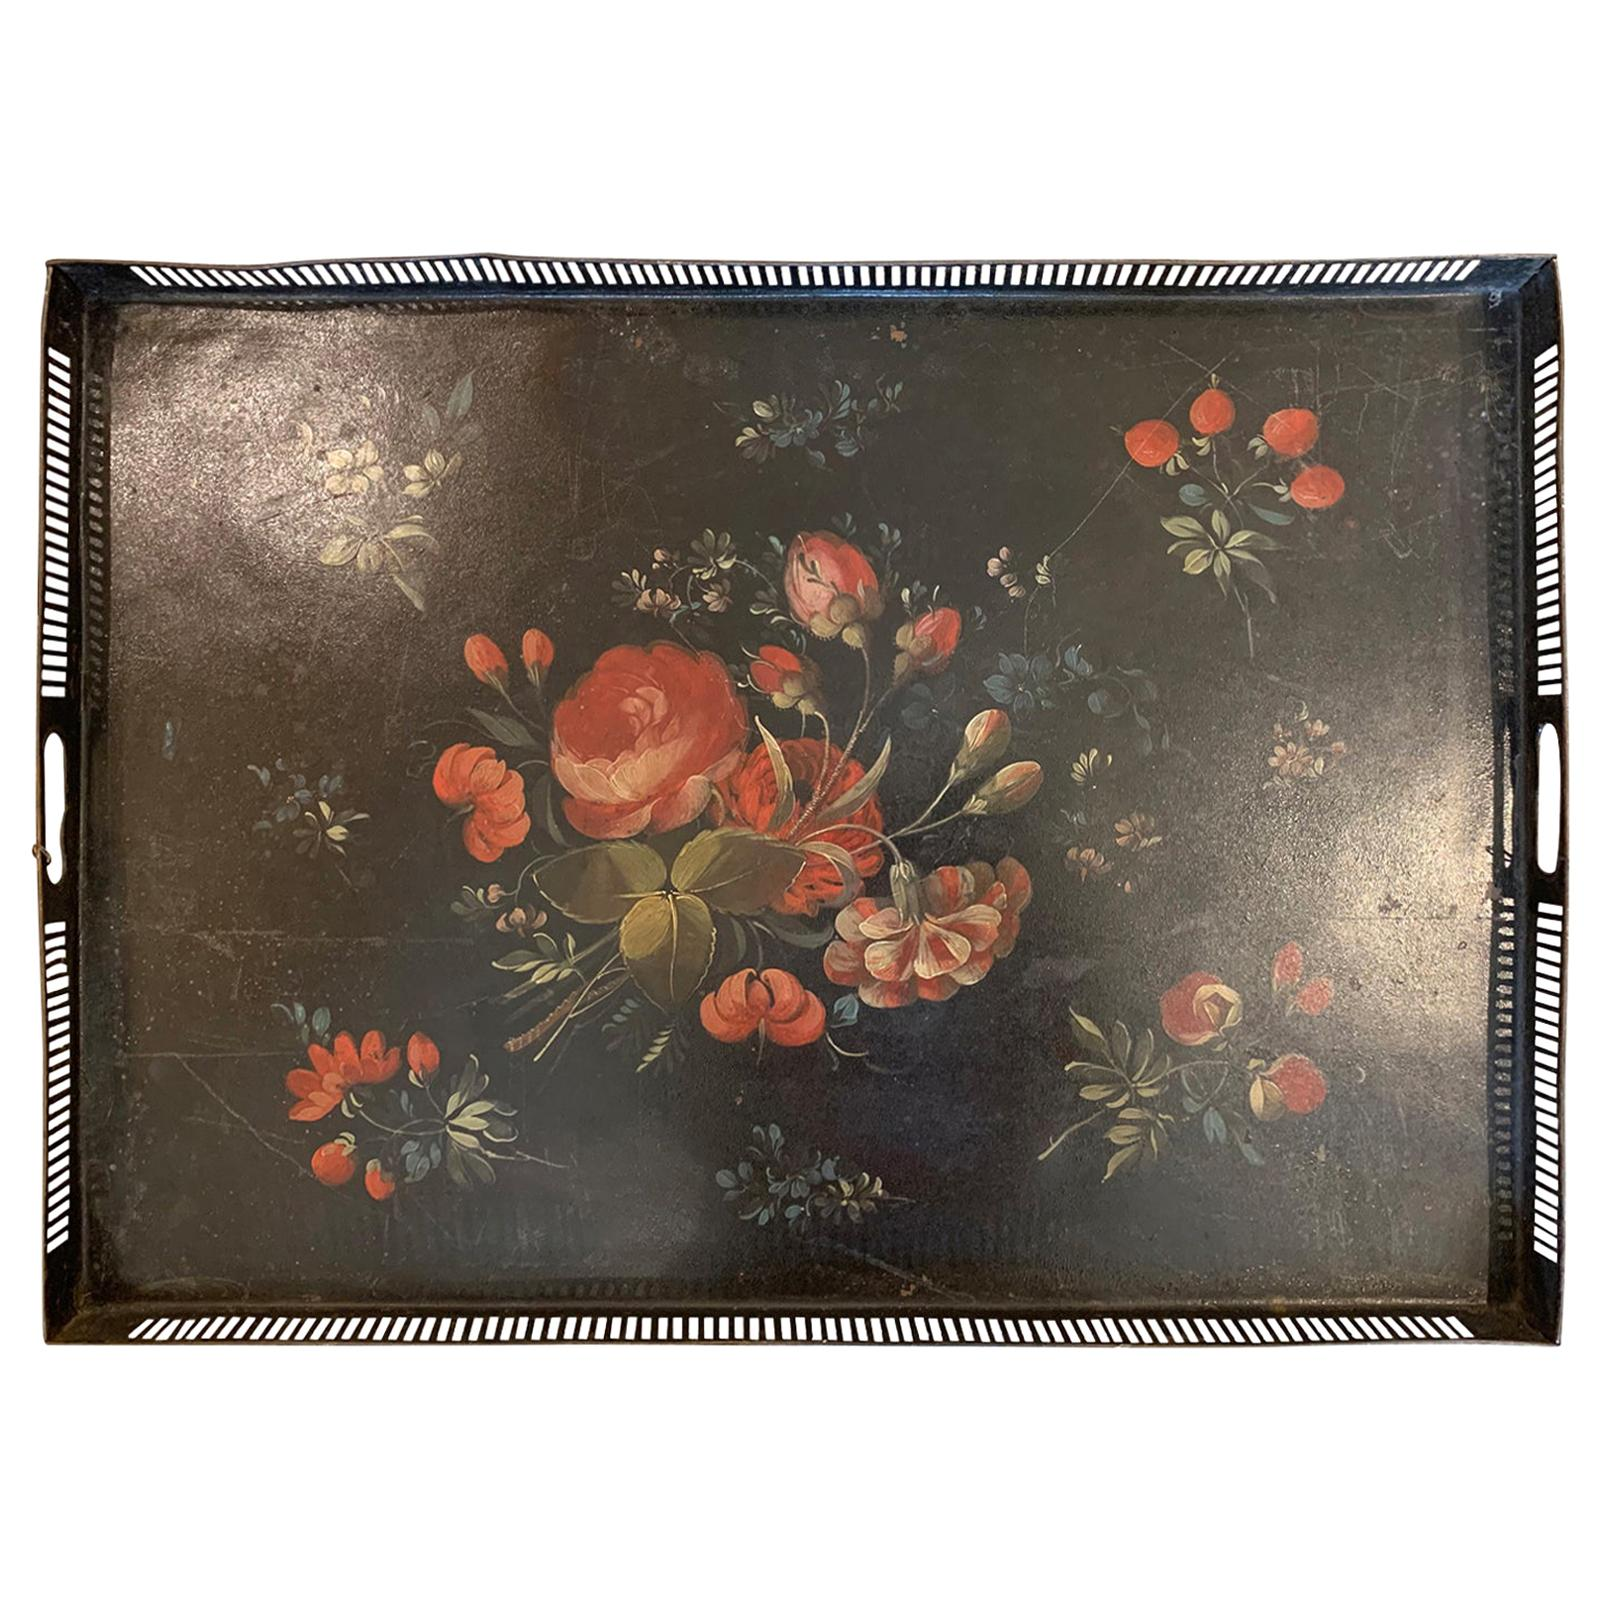 19th Century circa 1810 Painted Floral Tole Tray with Pierced Edge